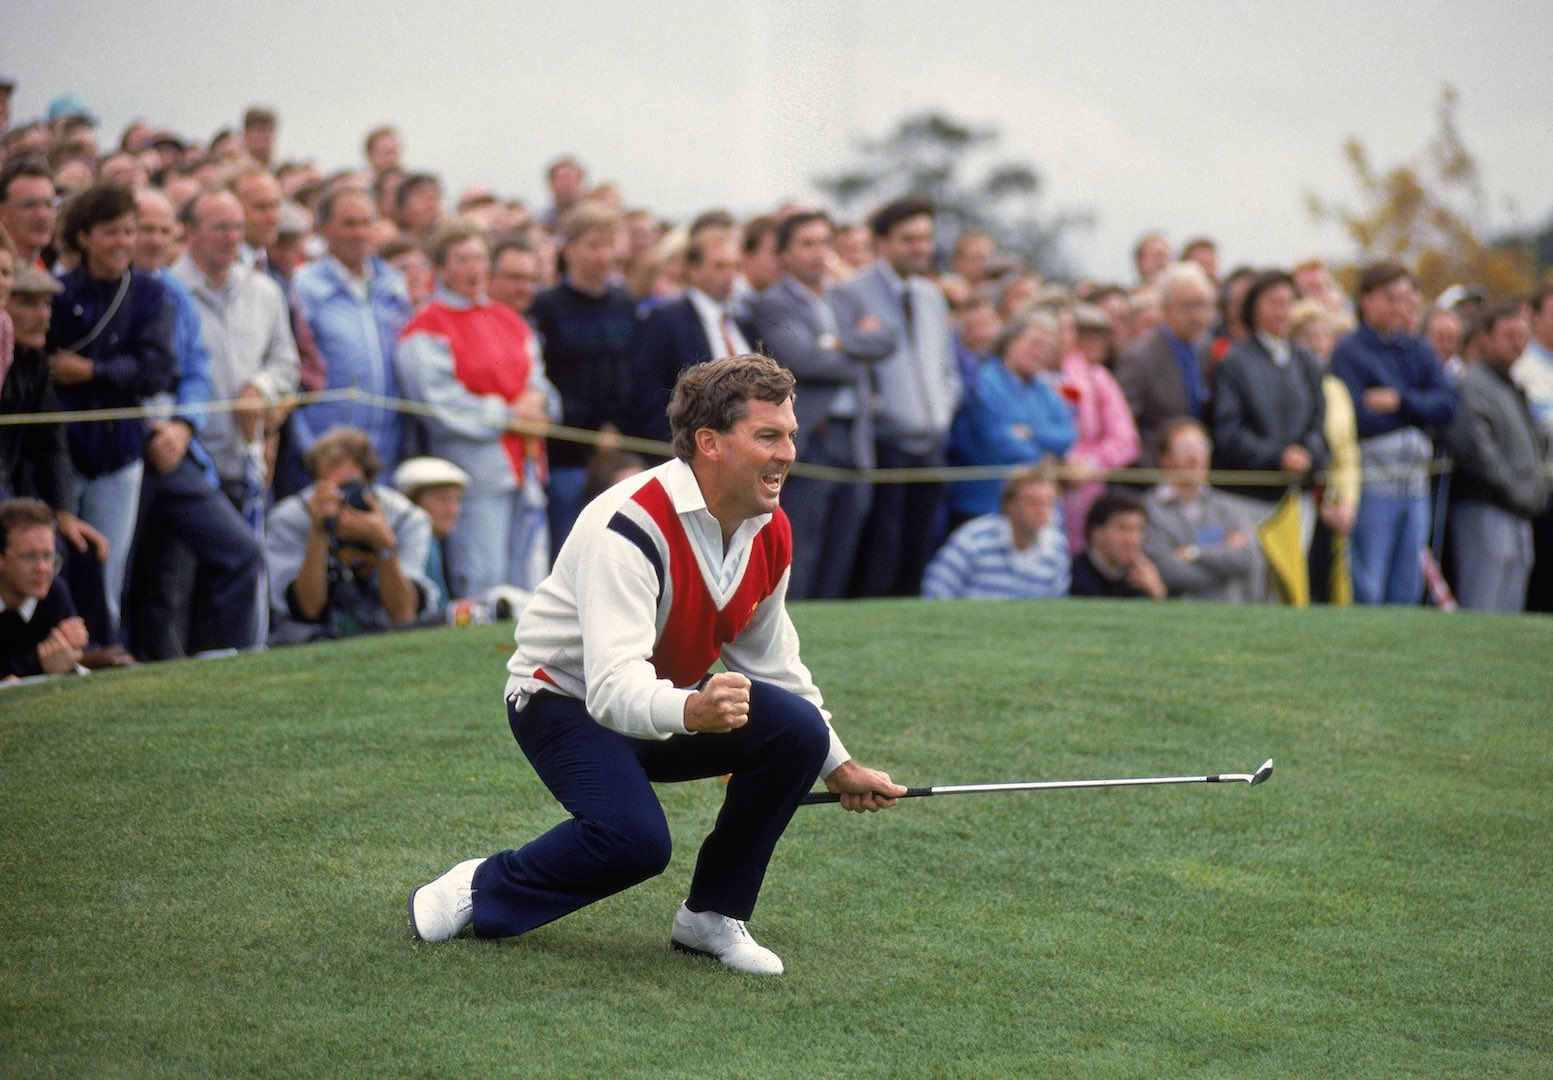 The Top 20 Golf Bets Of All Time